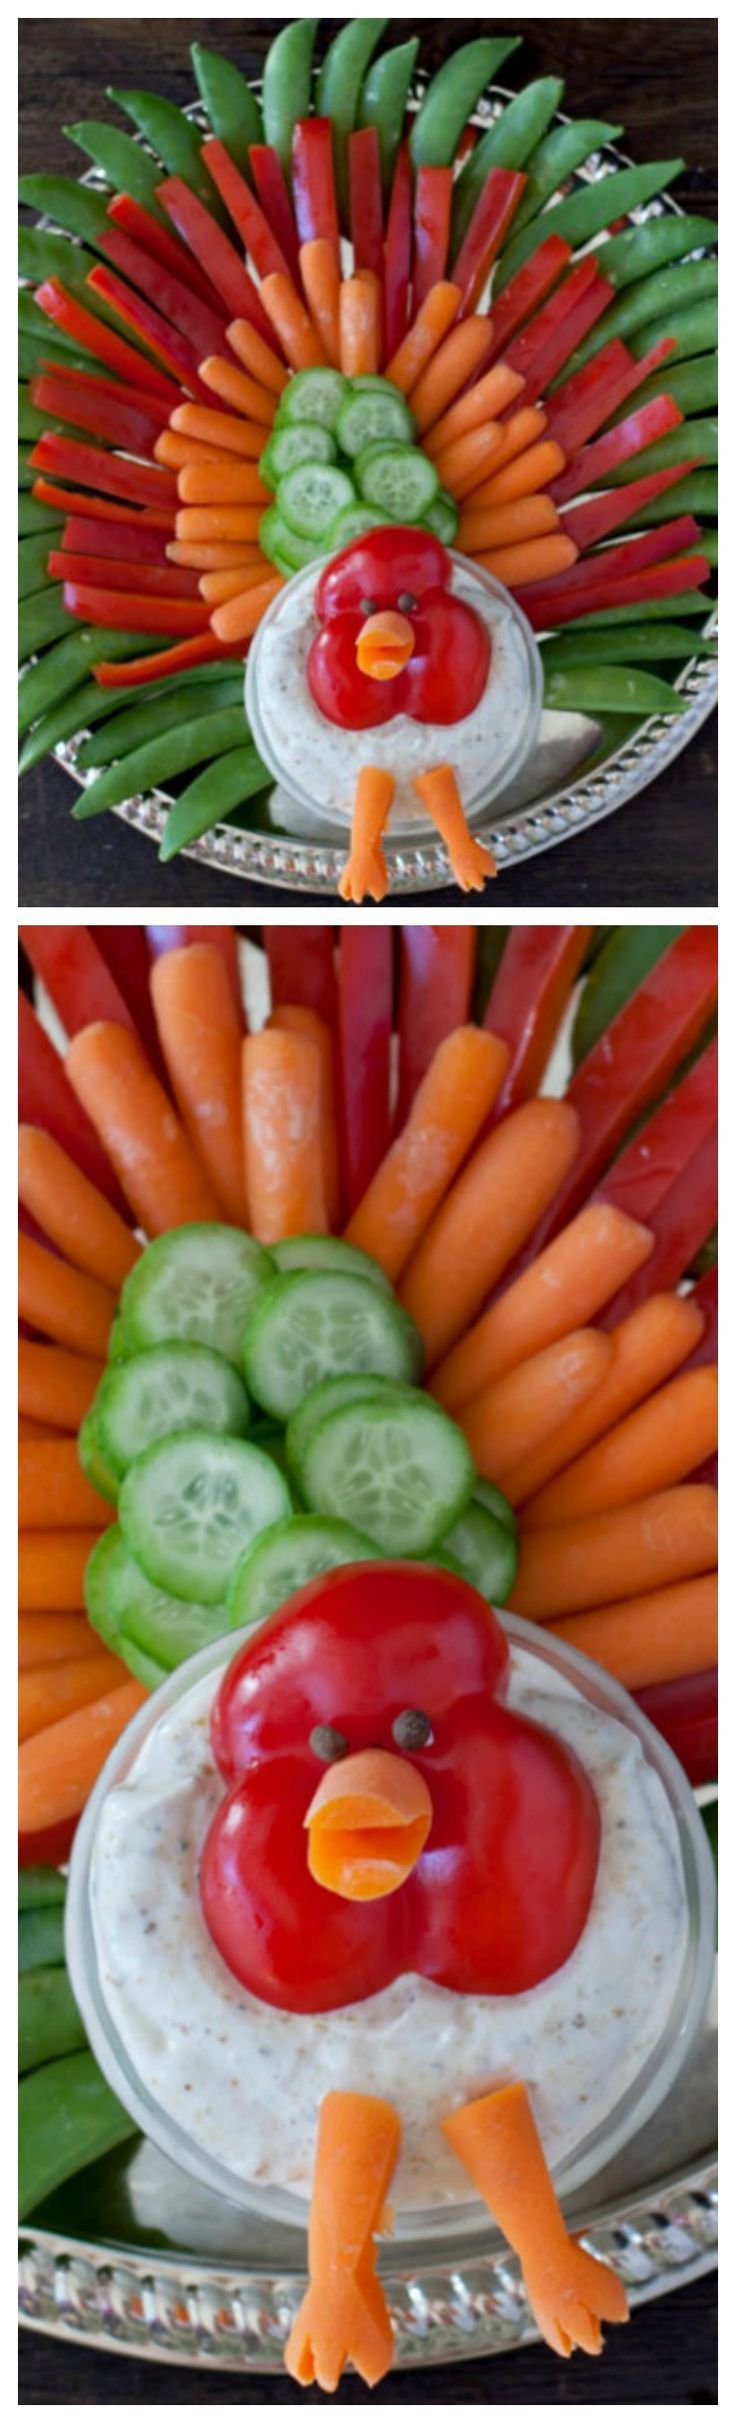 Best turkey veggie platter ideas on pinterest